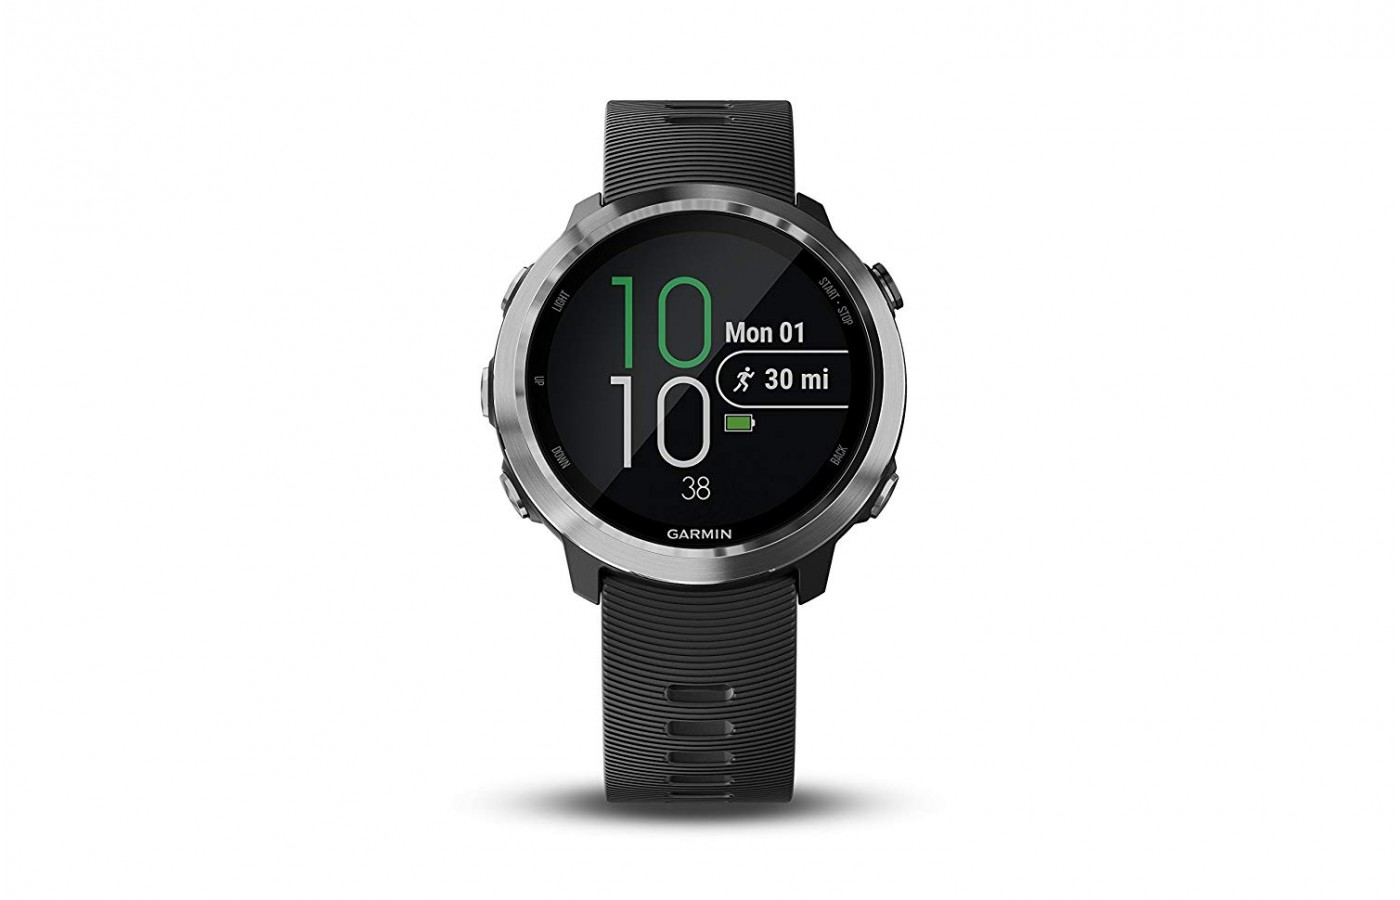 Garmin's new phone free music watch also features button scroll over touch screen.